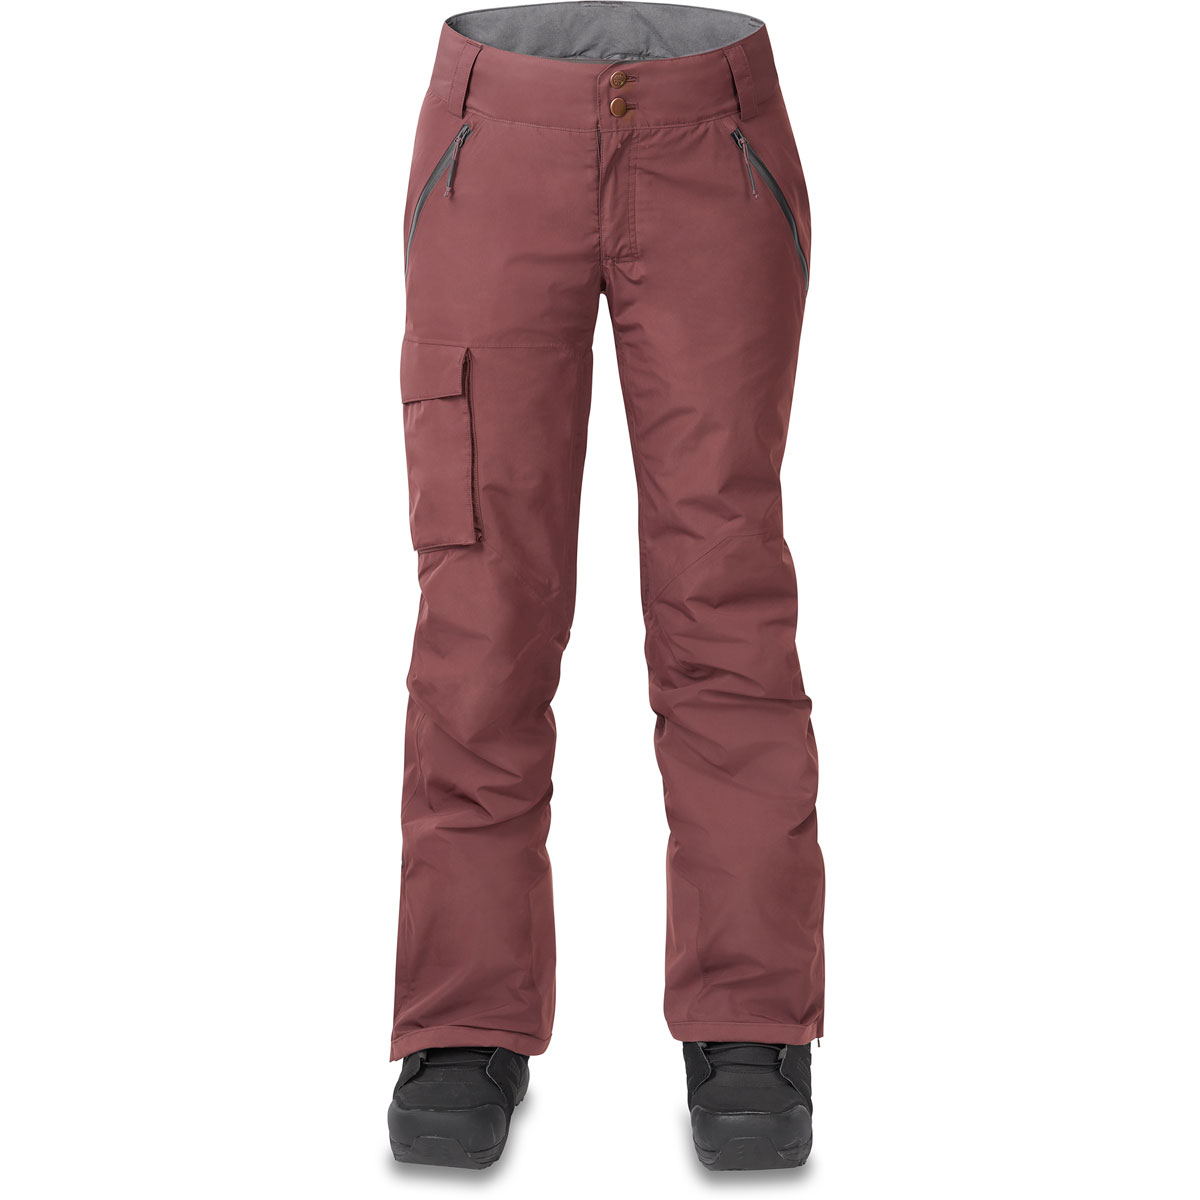 Dakine Remington Pant in Rust Brown